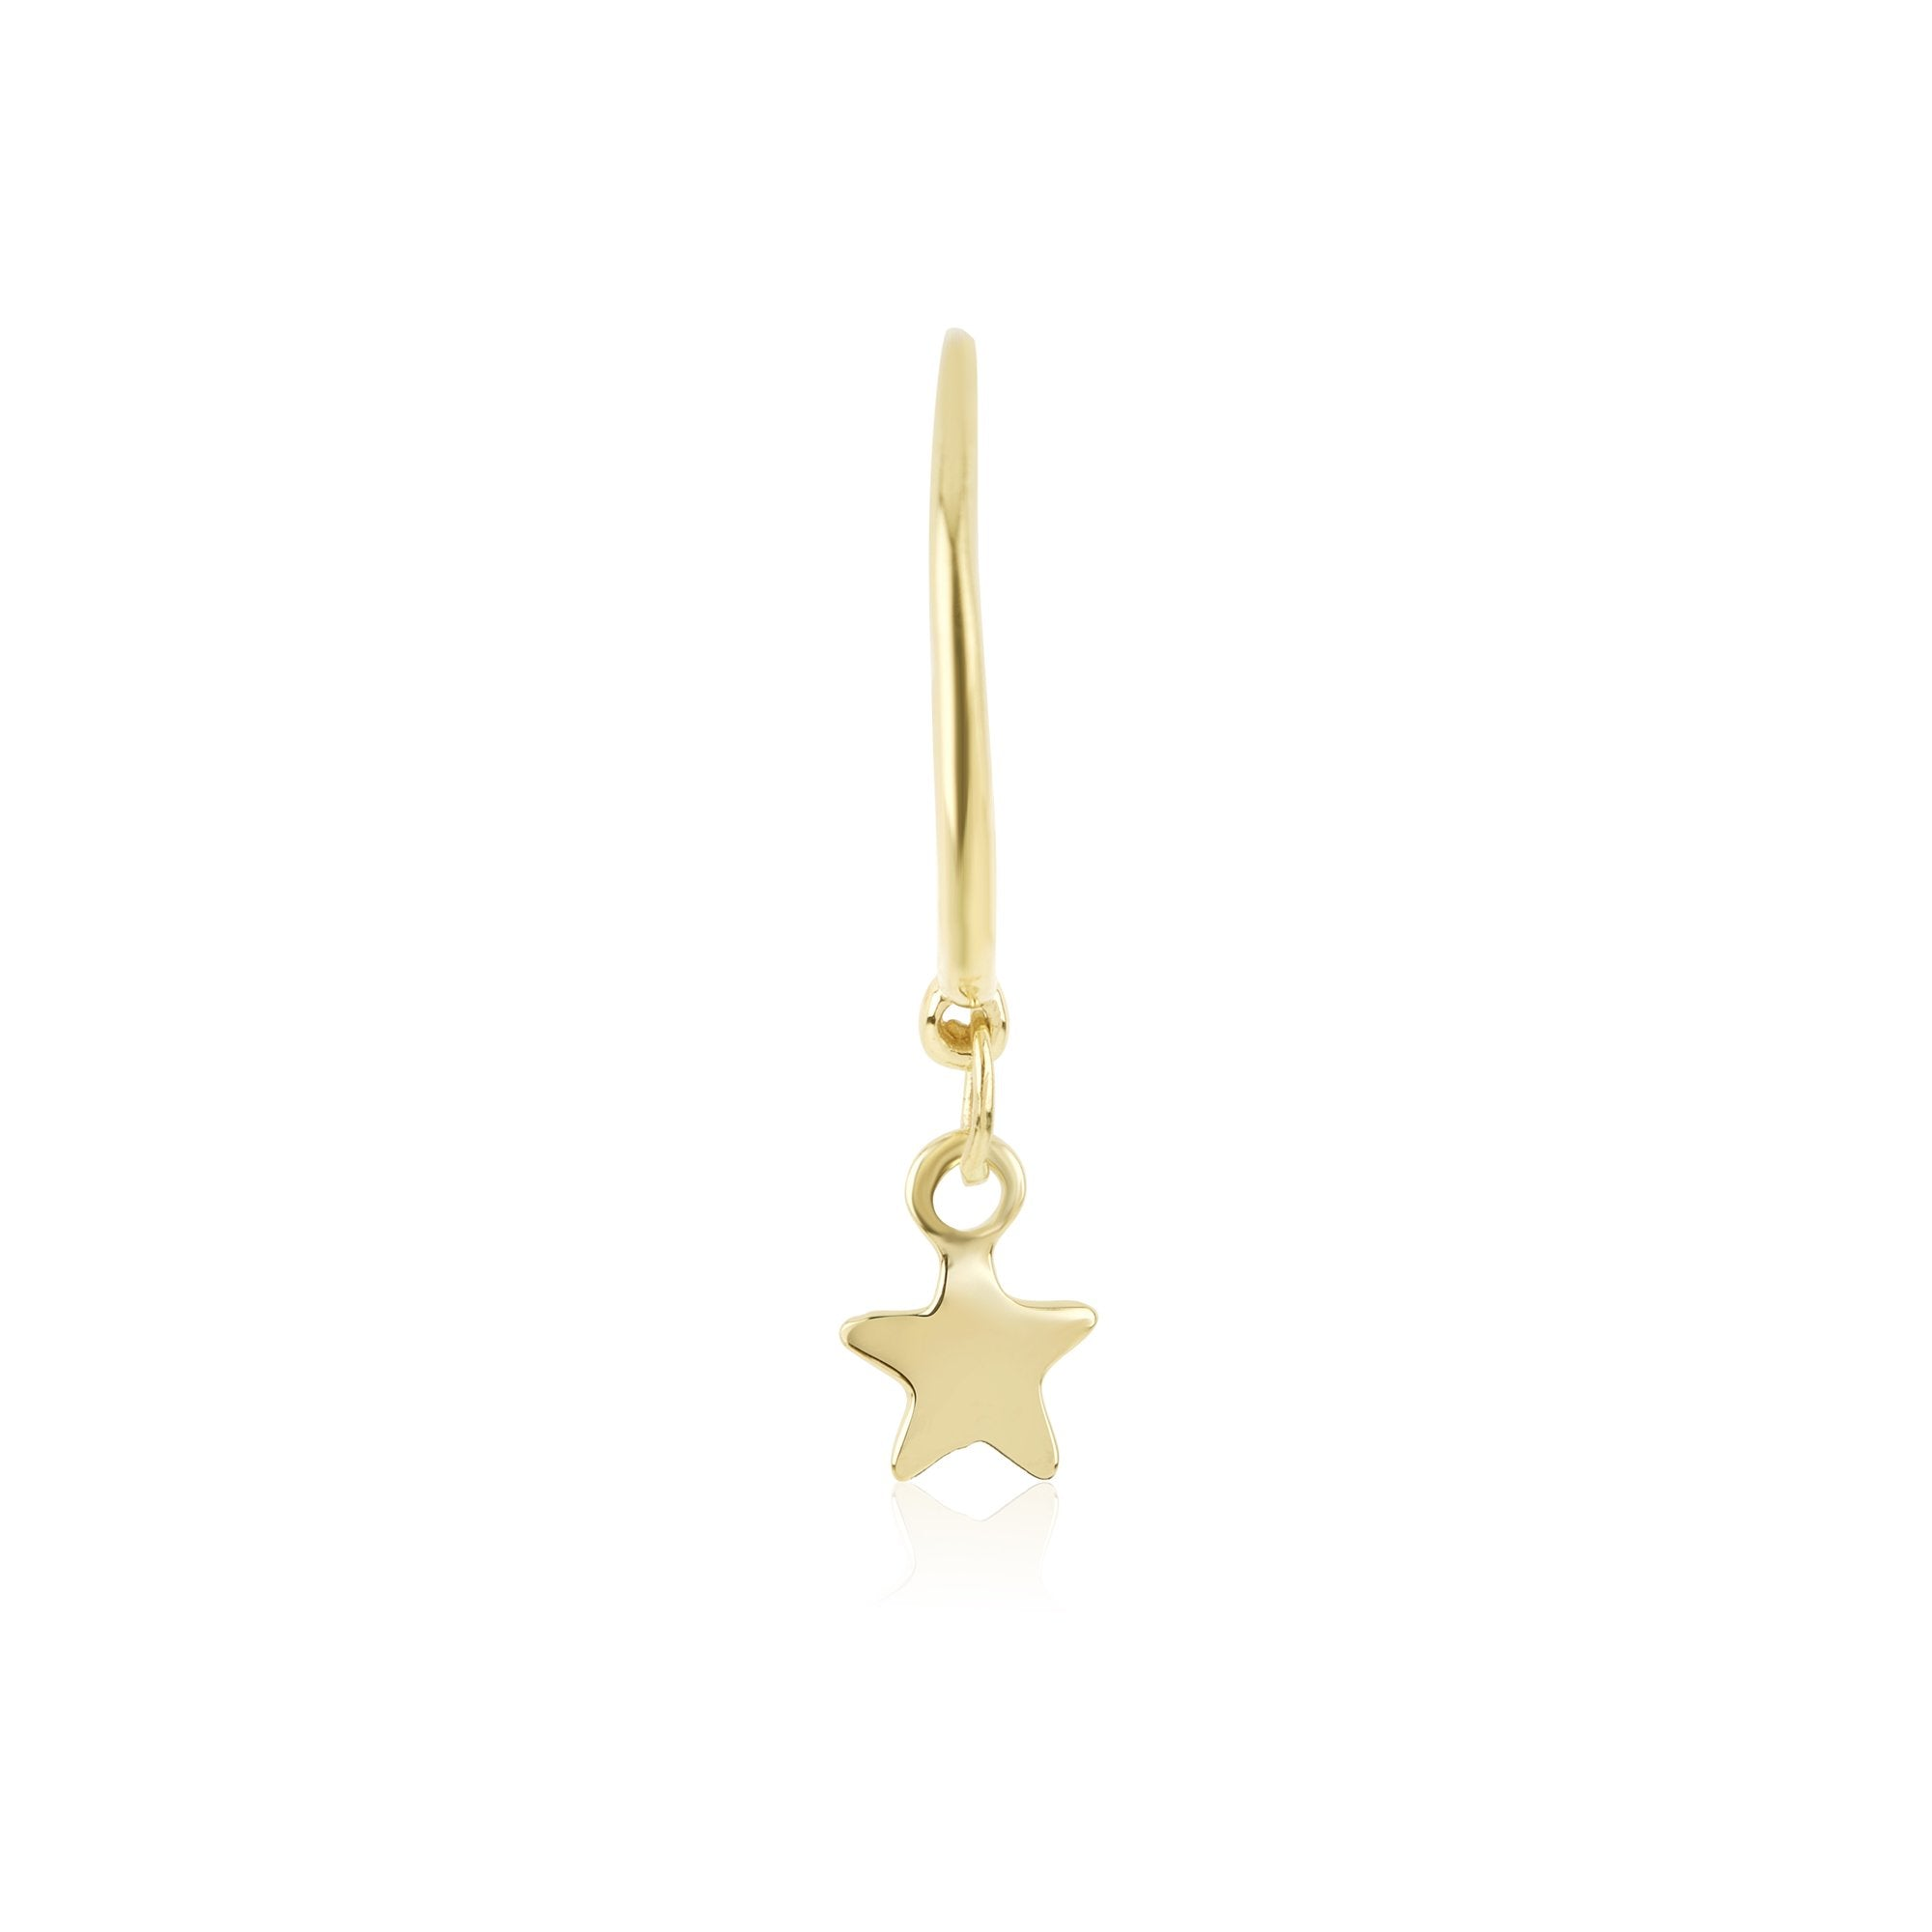 gold hoop earring with star charm